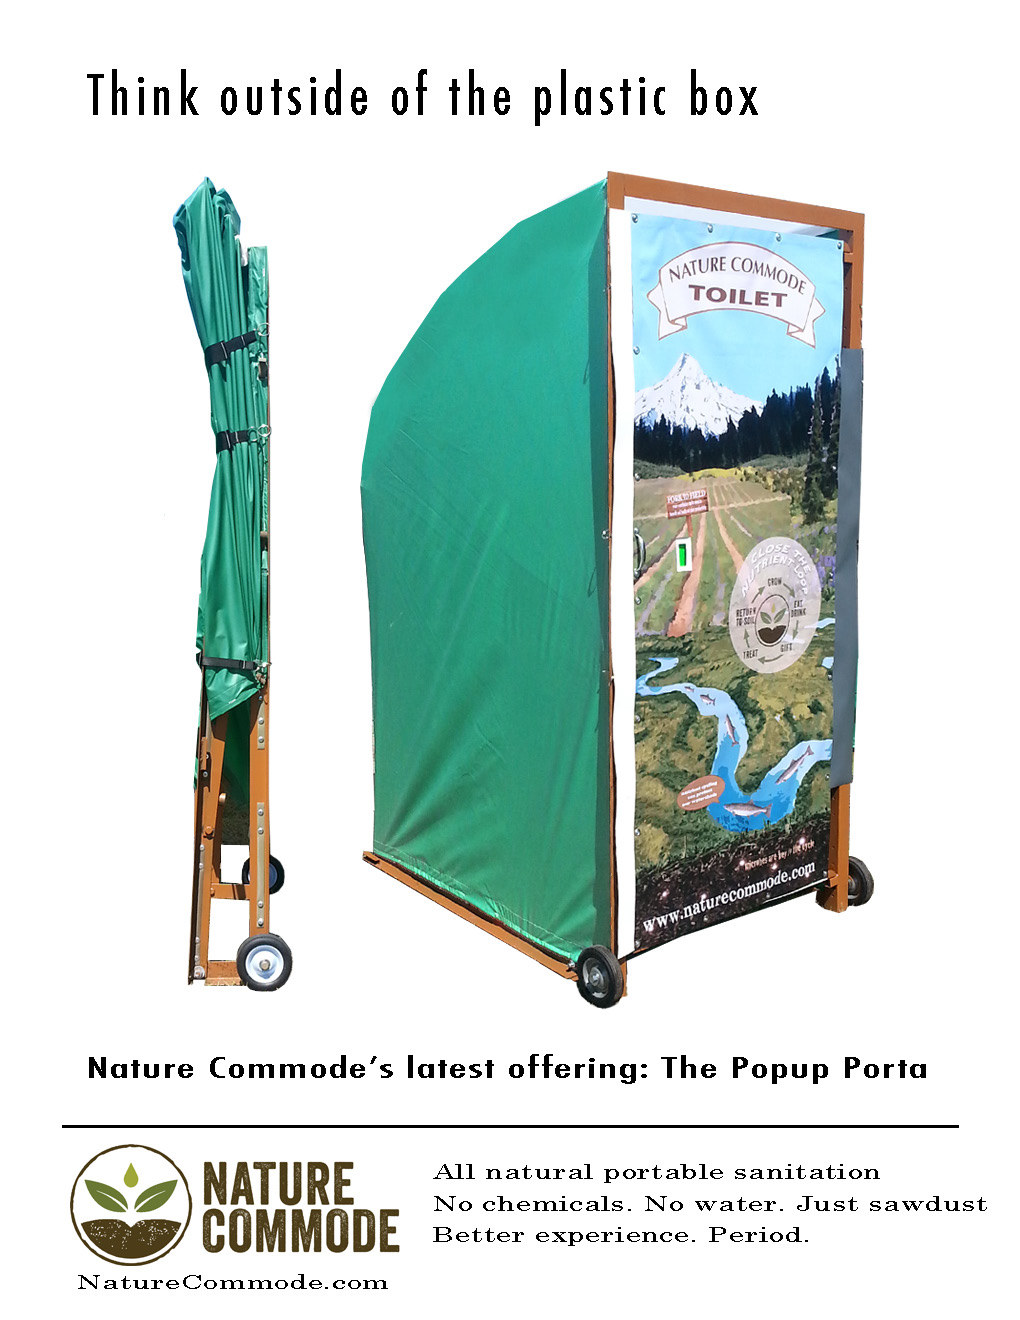 Nature Commode's Popup Porta folds flat and relies on sawdust, not chemicals, to prevent odors.